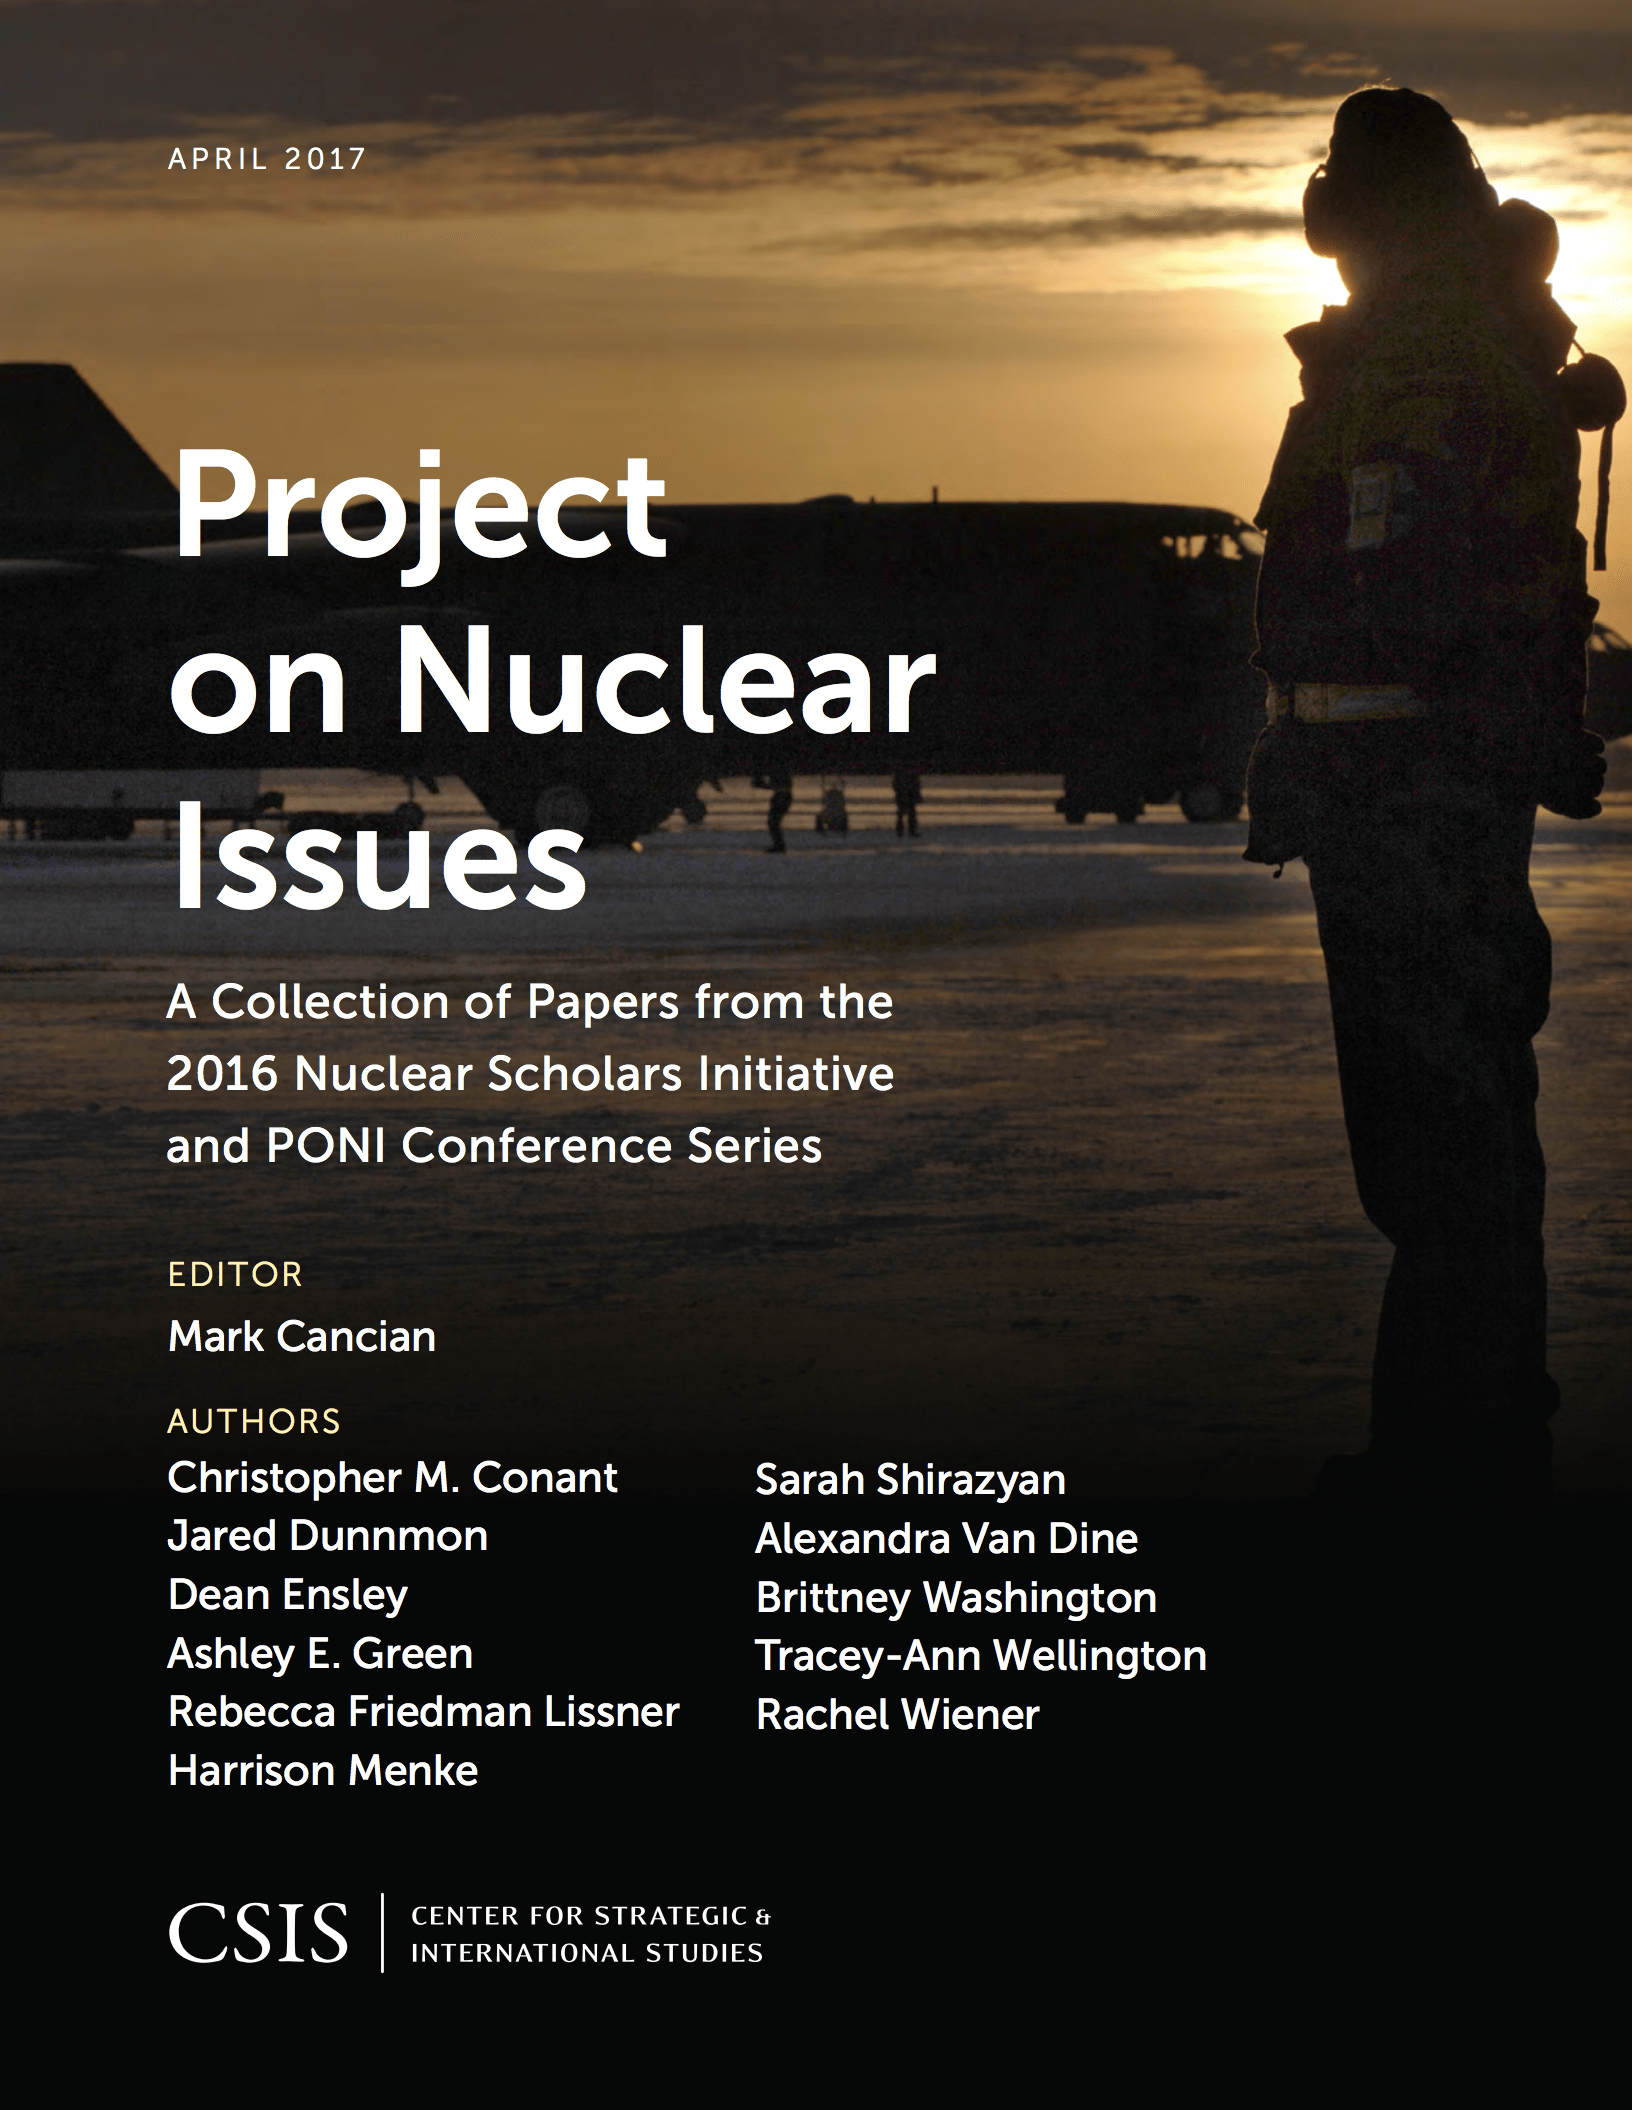 Project on Nuclear Issues 2016 Nuclear Scholars Initiative